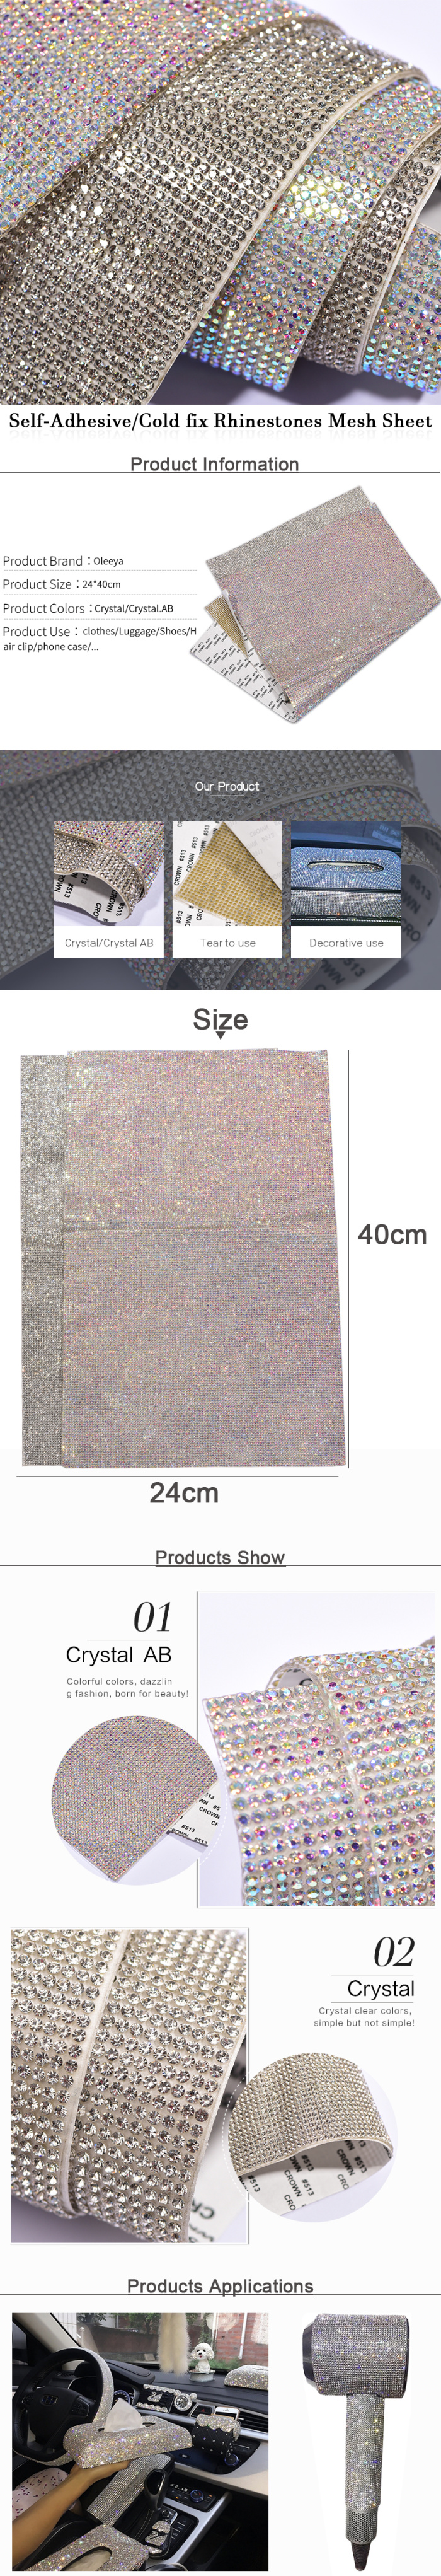 OLeeya Factory Wholesale 24*40cm SS6 Self Adhesive Rhinestone Mesh Crystal And Crystal AB Rhinestone Sheet For DIY